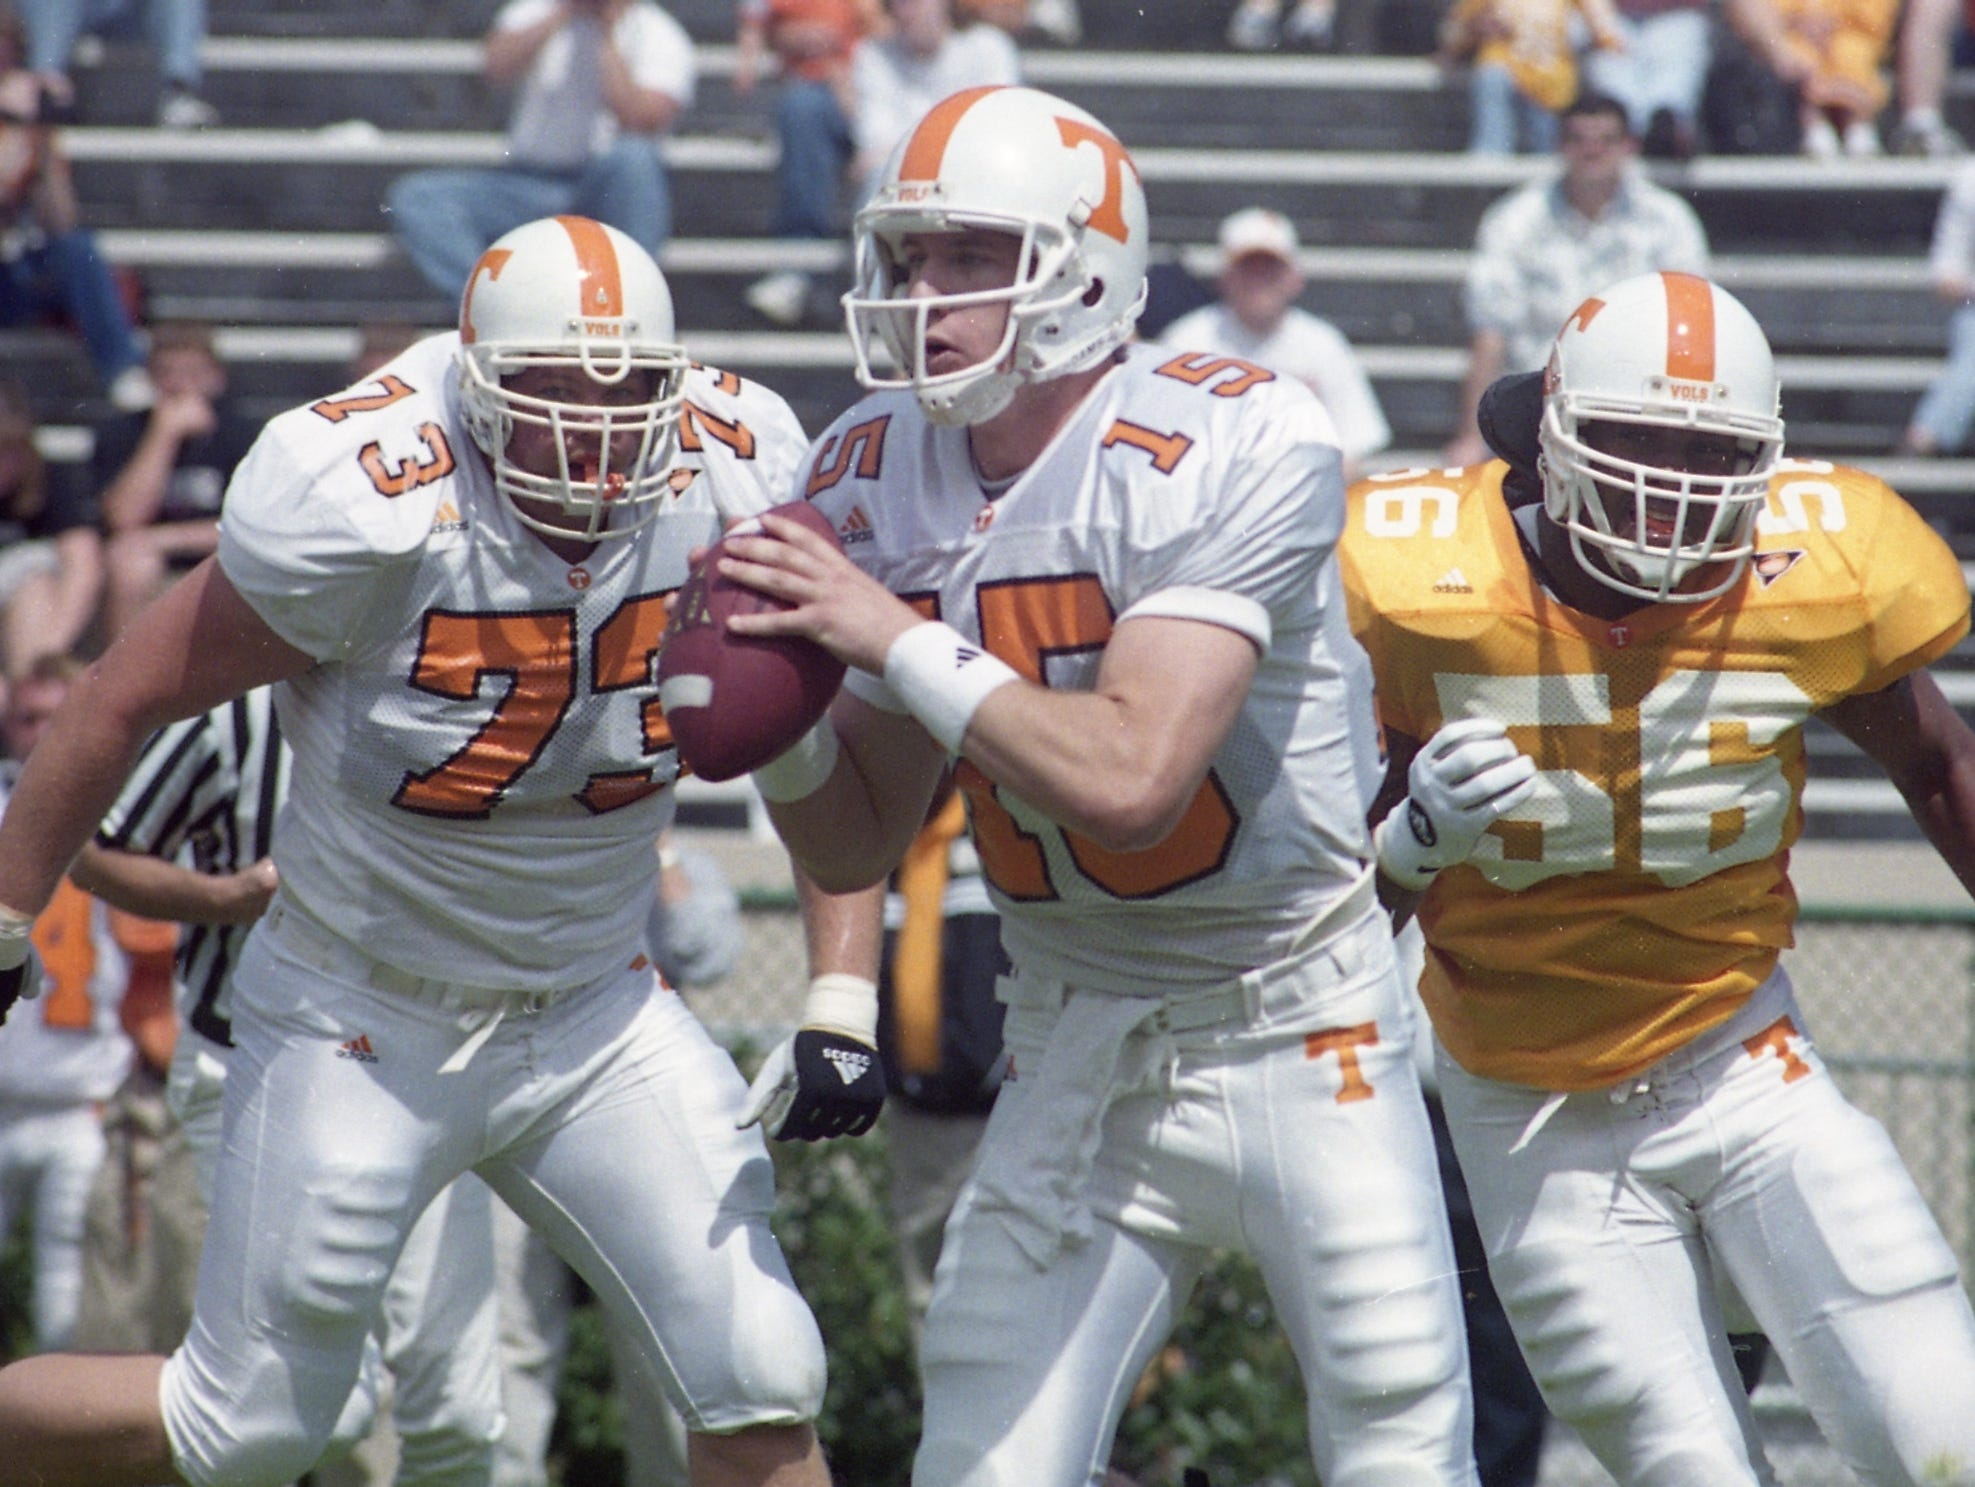 Tennessee quarterback AJ Suggs, 15, looks for an opening as Bernad Jackson, 56, is coming in from behind on April 16, 2000. Will Ofenheusle, 73, tries to run in to block.